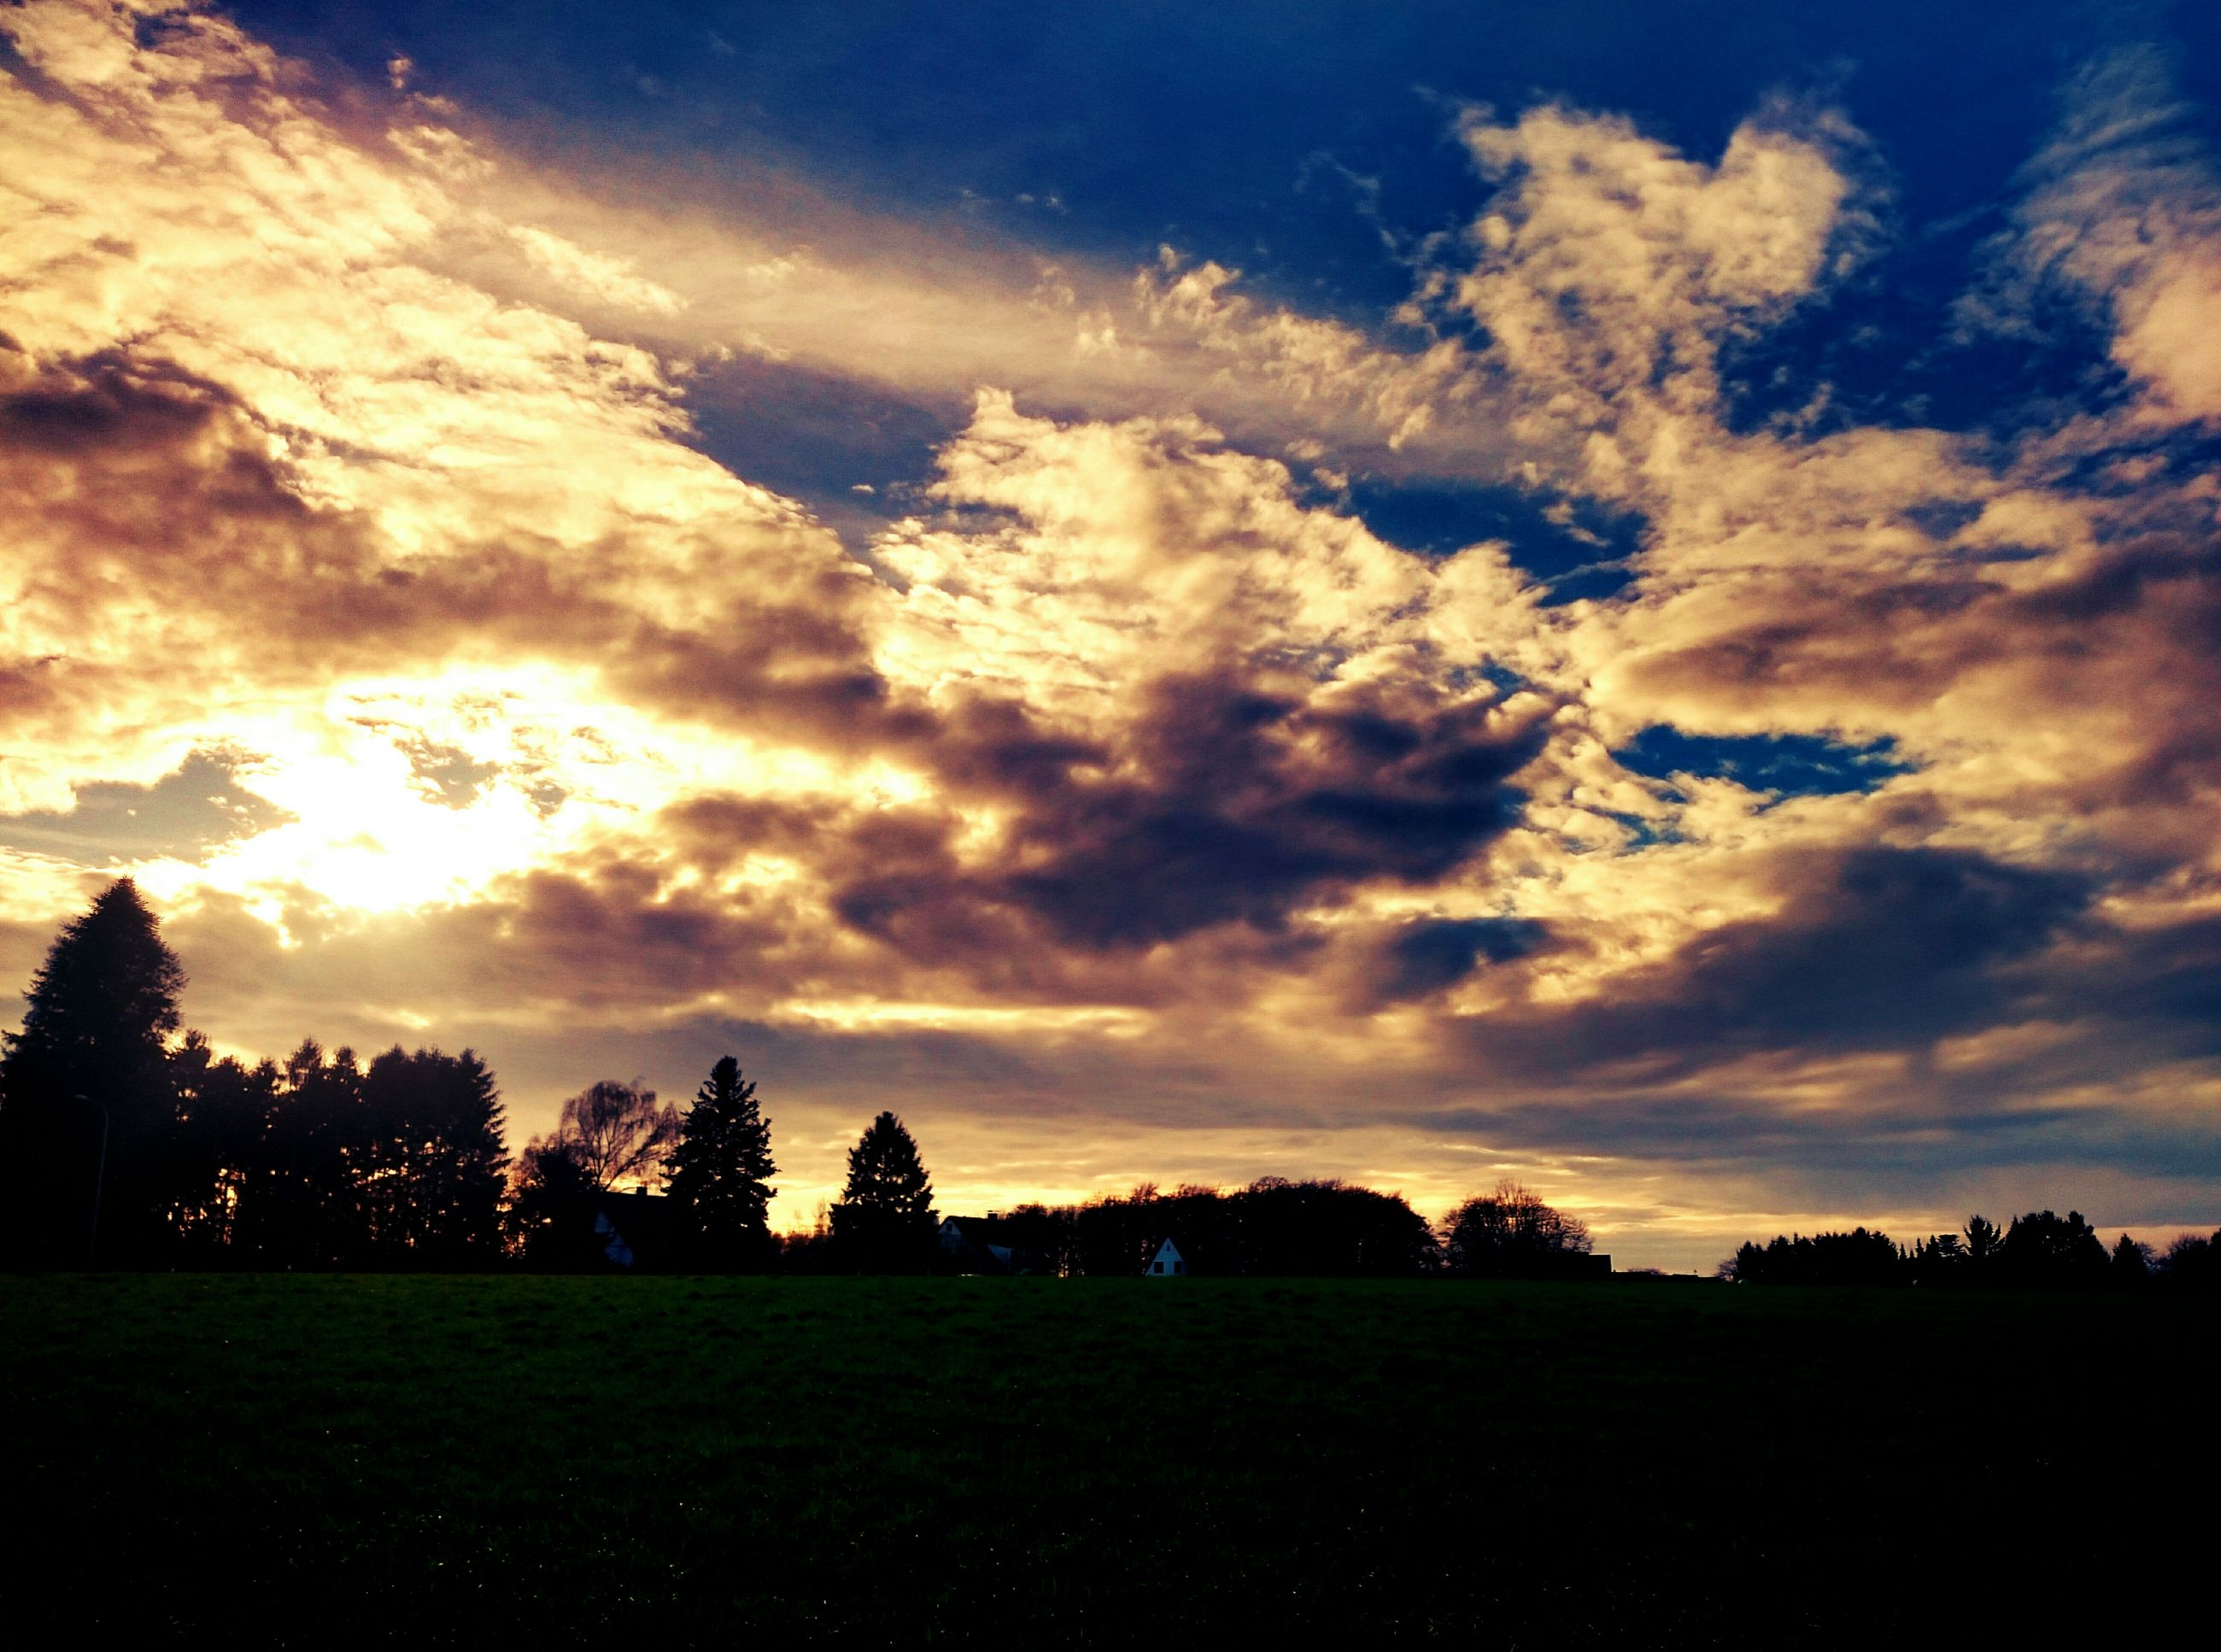 sky, tranquil scene, landscape, sunset, tranquility, field, tree, cloud - sky, scenics, beauty in nature, silhouette, grass, nature, cloudy, cloud, idyllic, dramatic sky, growth, grassy, non-urban scene